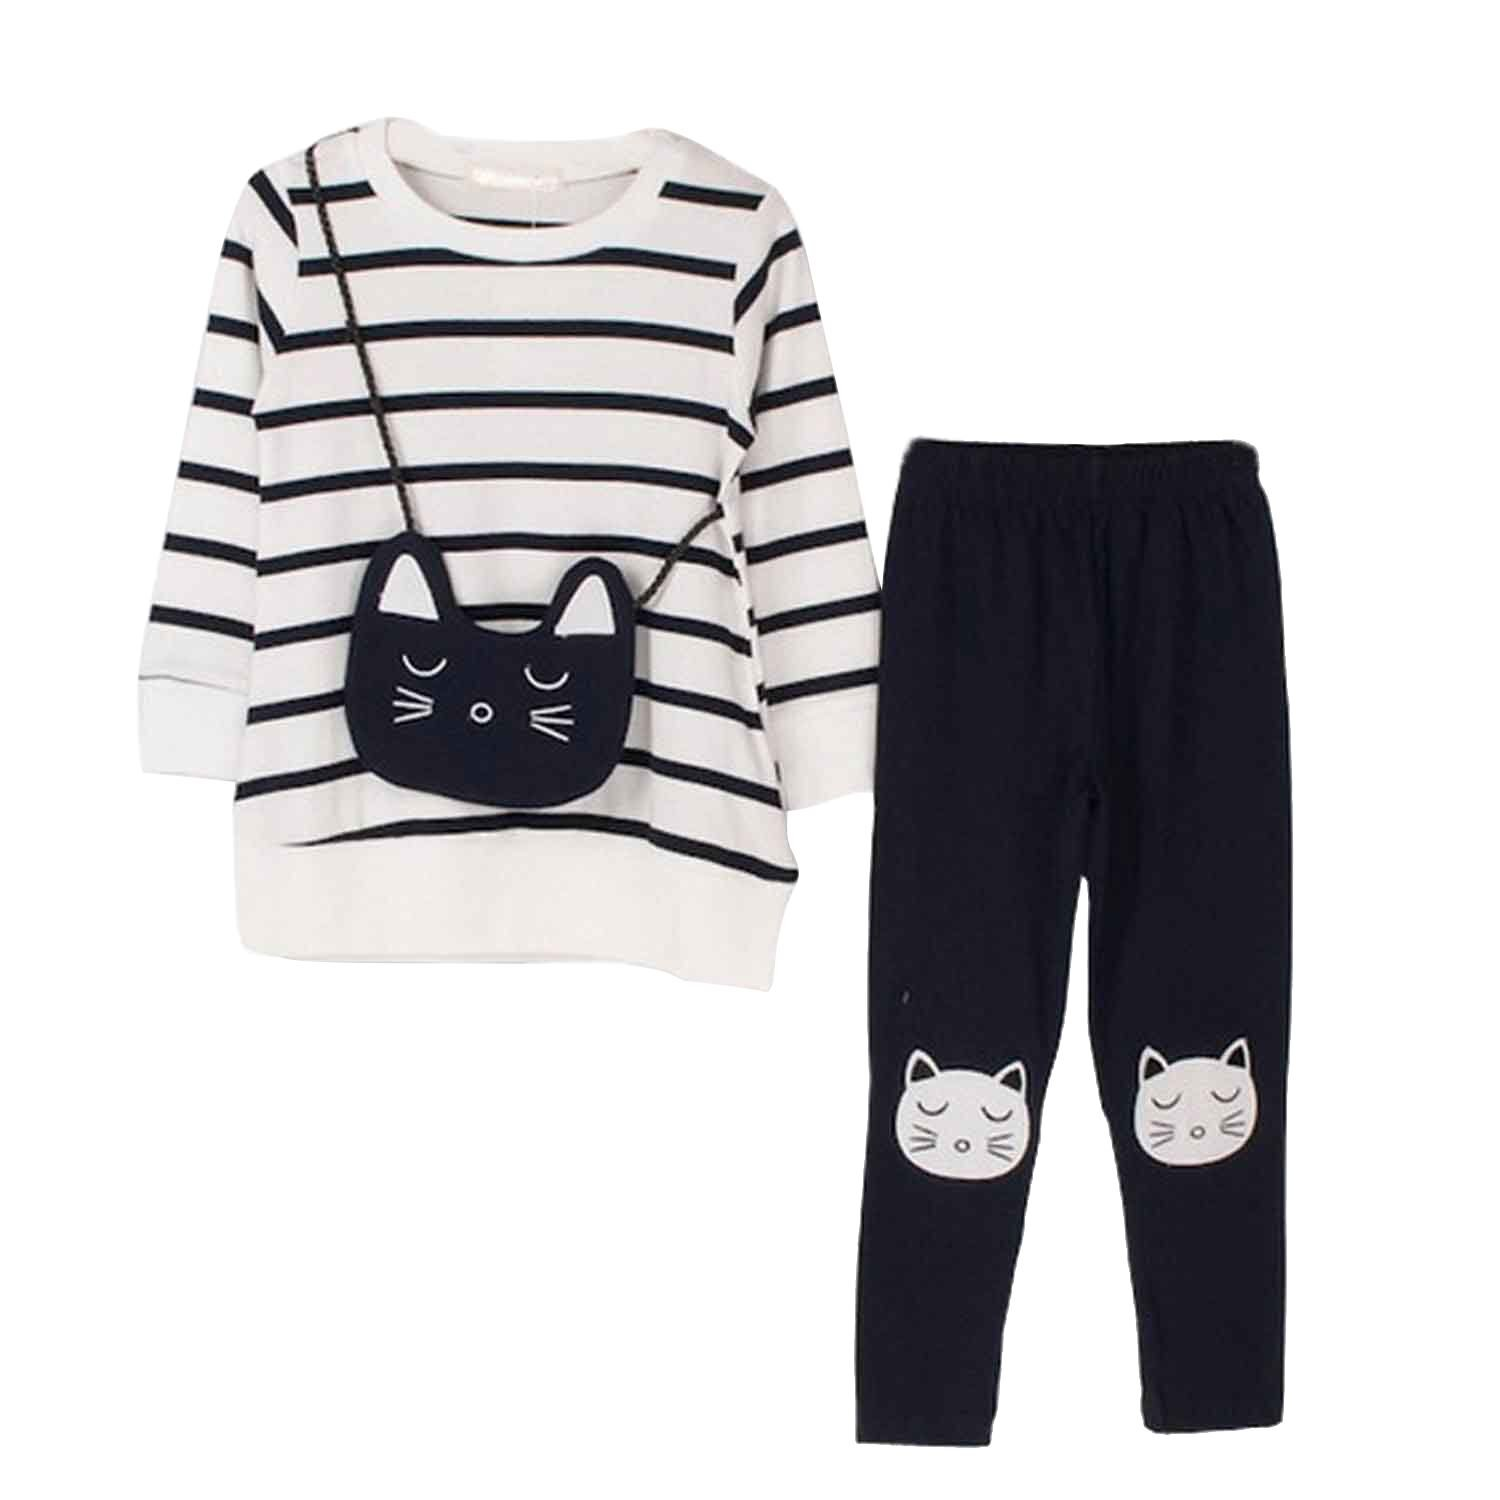 little Girls Cute Long Sleeve Top   Pant Clothes Set White Cat Tag 110  4-5 Years